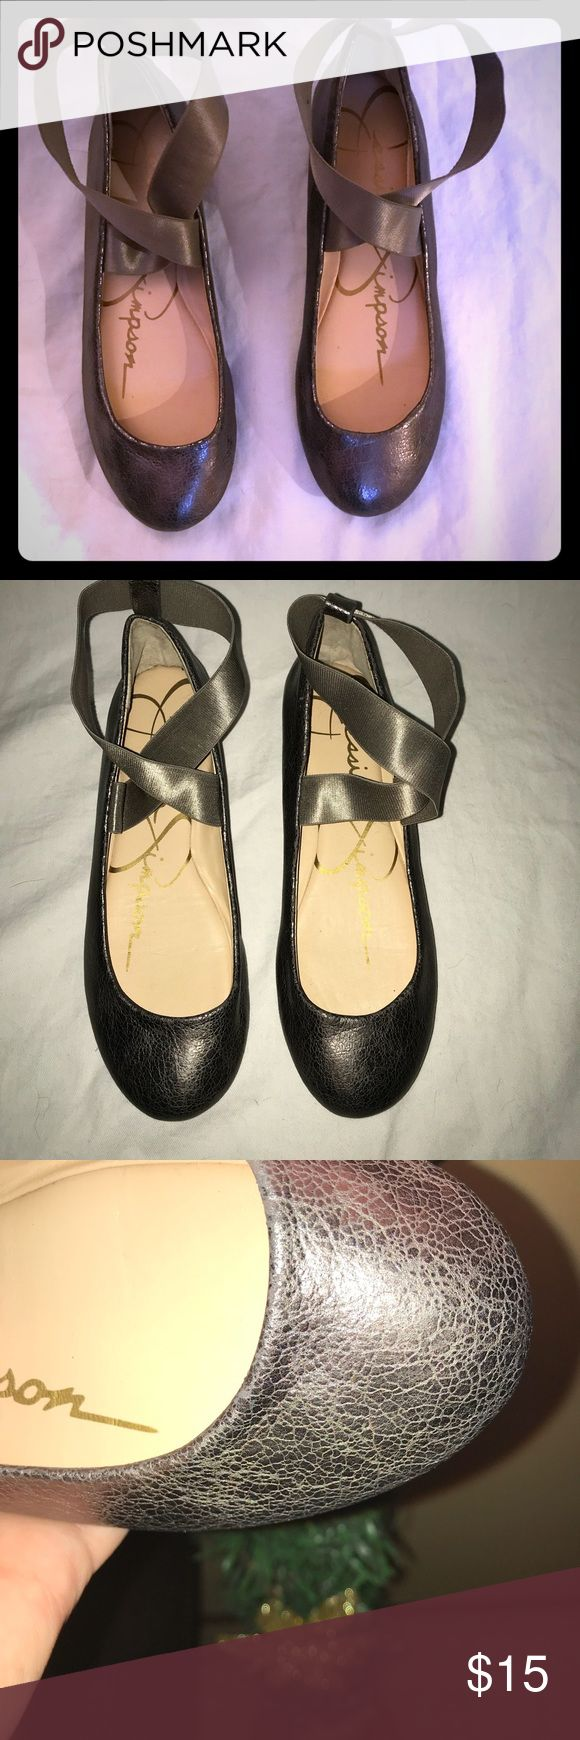 Jessica Simpson ballet flats. 6.5 Jessica Simpson ballet flats. Color is gunmetal. Round toe and elastic ankle straps. Jessica Simpson Shoes Flats & Loafers